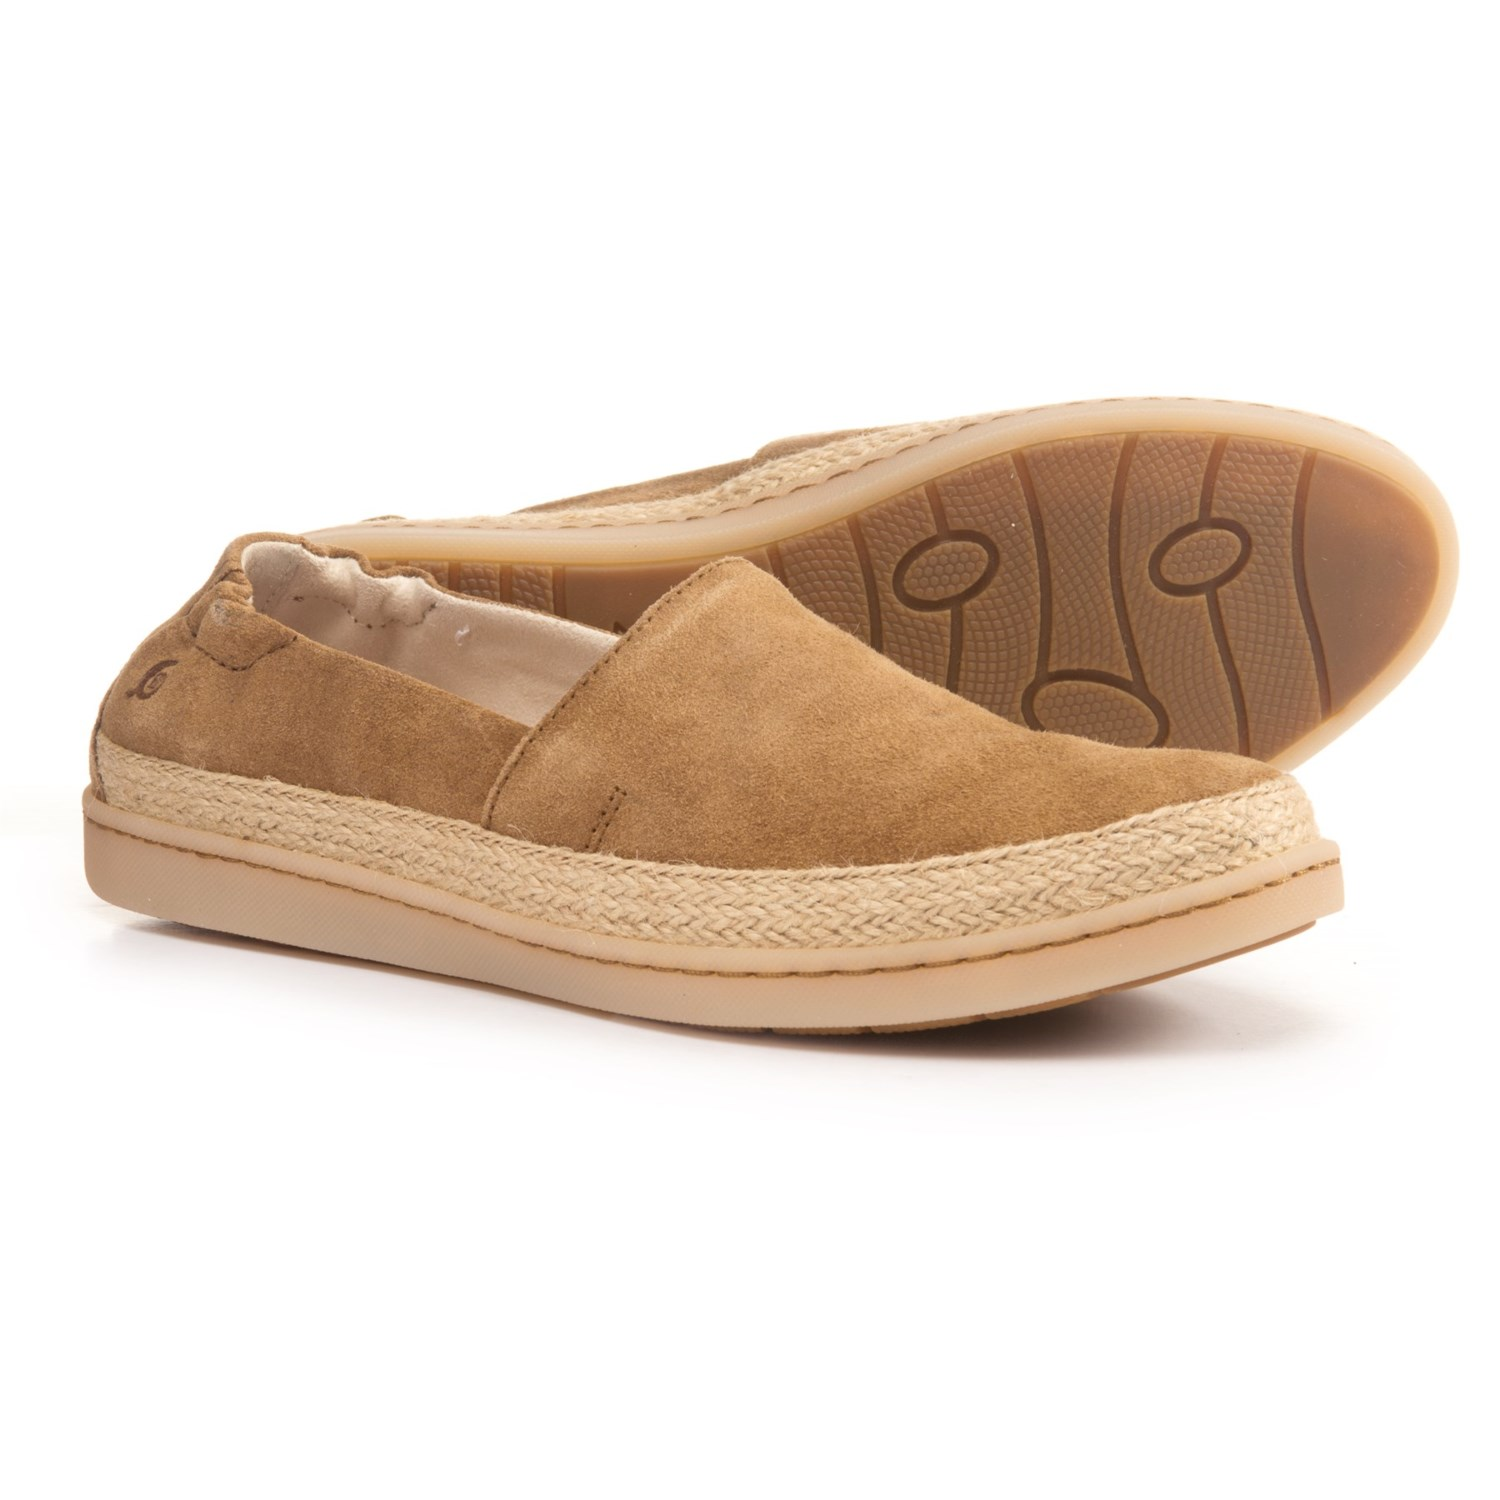 Born Castries Espadrilles - Suede (For Women)